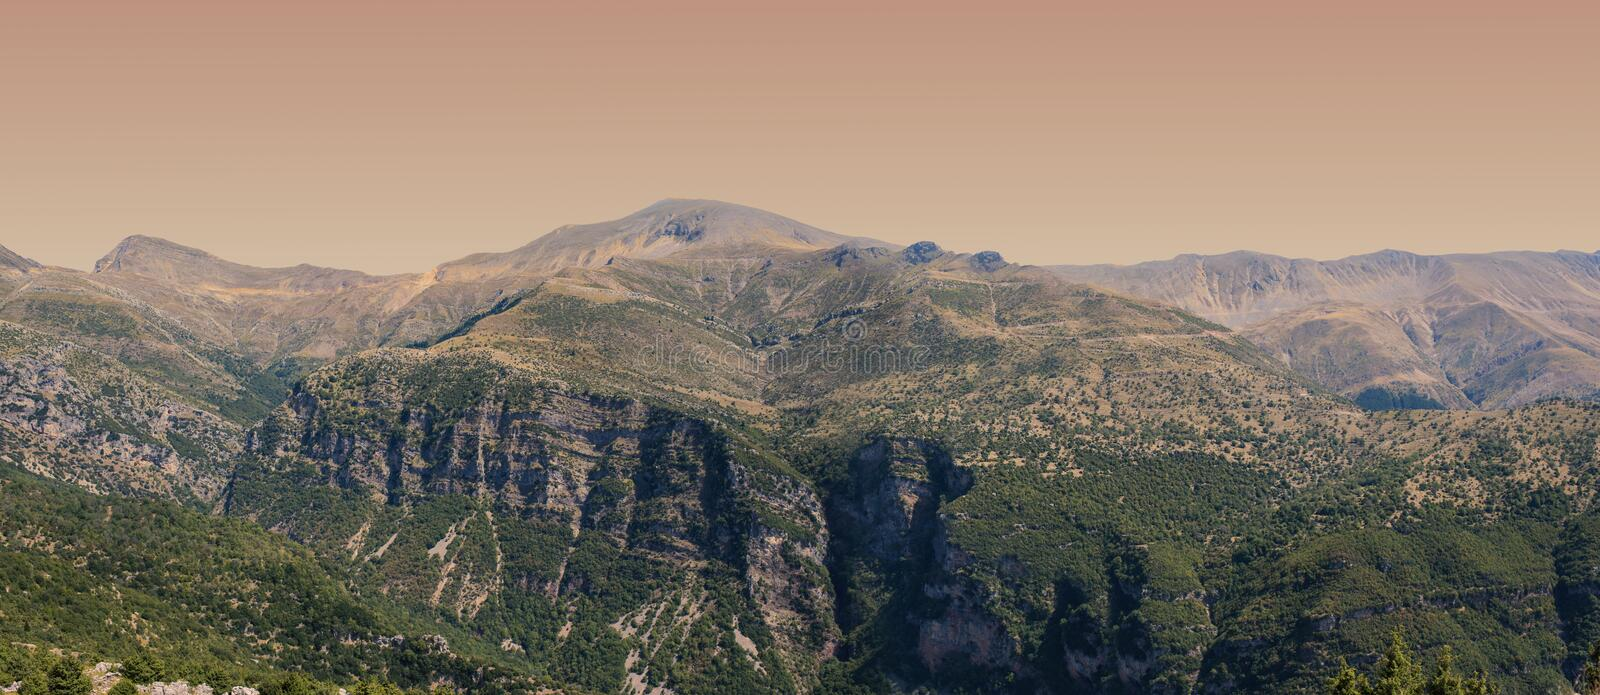 Banner of Panoramic view of mountain in National Park of Tzoumerka, Greece Epirus region. Mountain stock photos